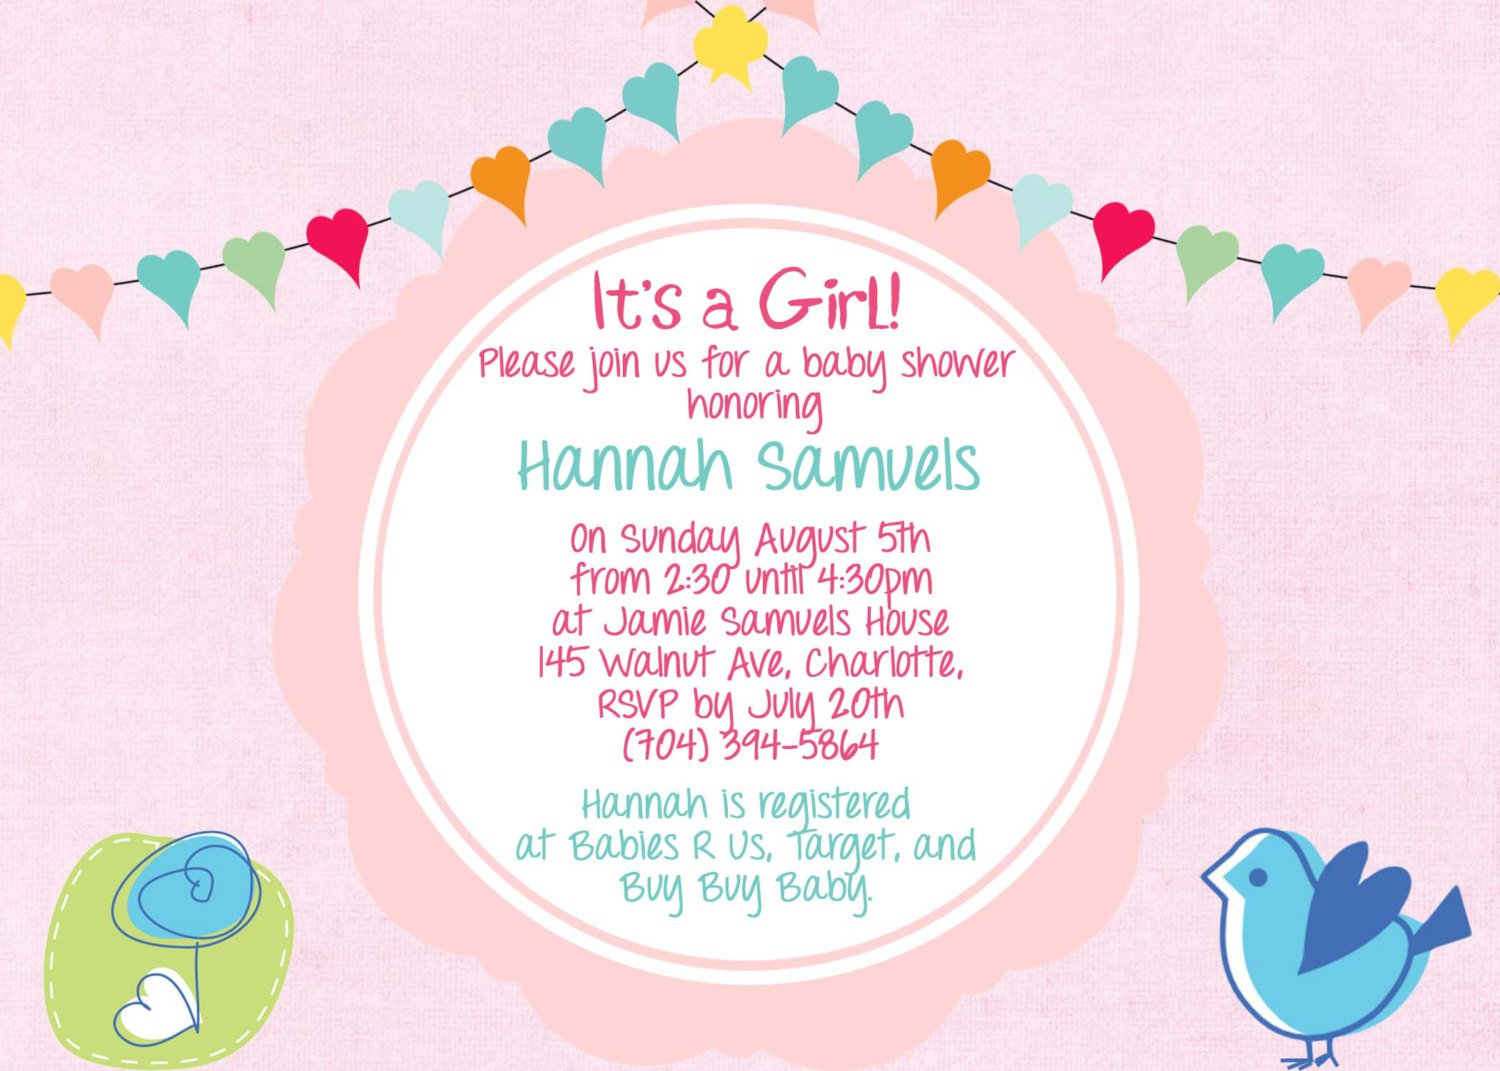 Suggested Wording For Baby Shower Invitations